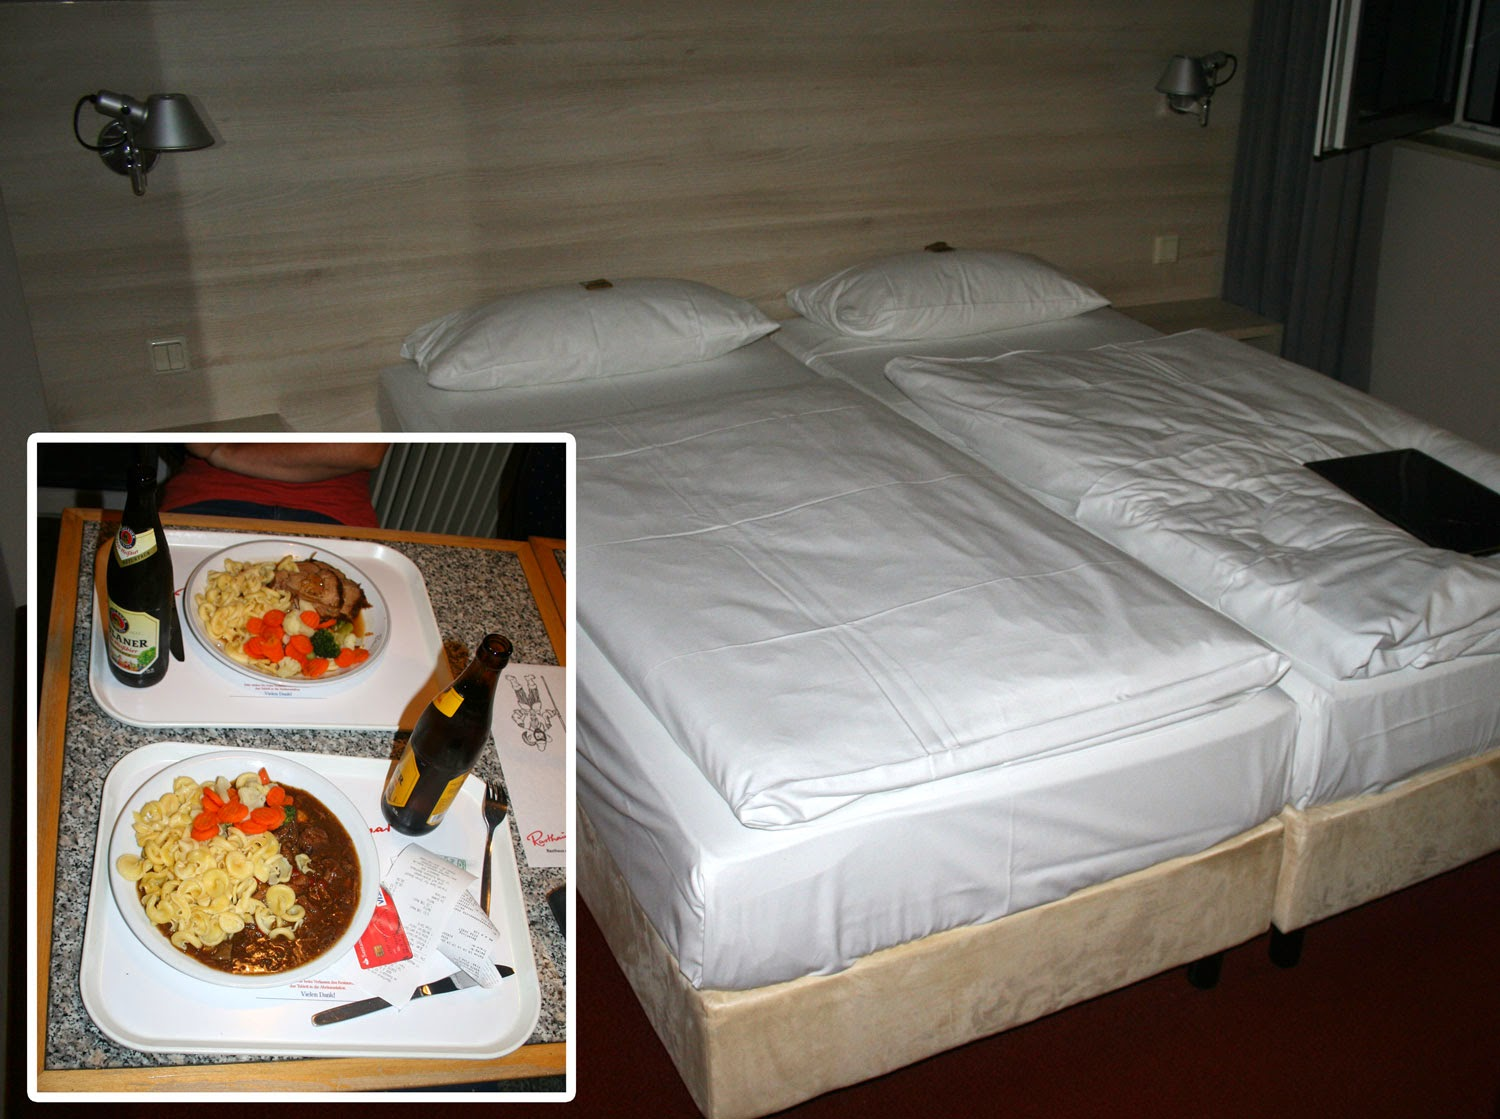 Our room and our dinner